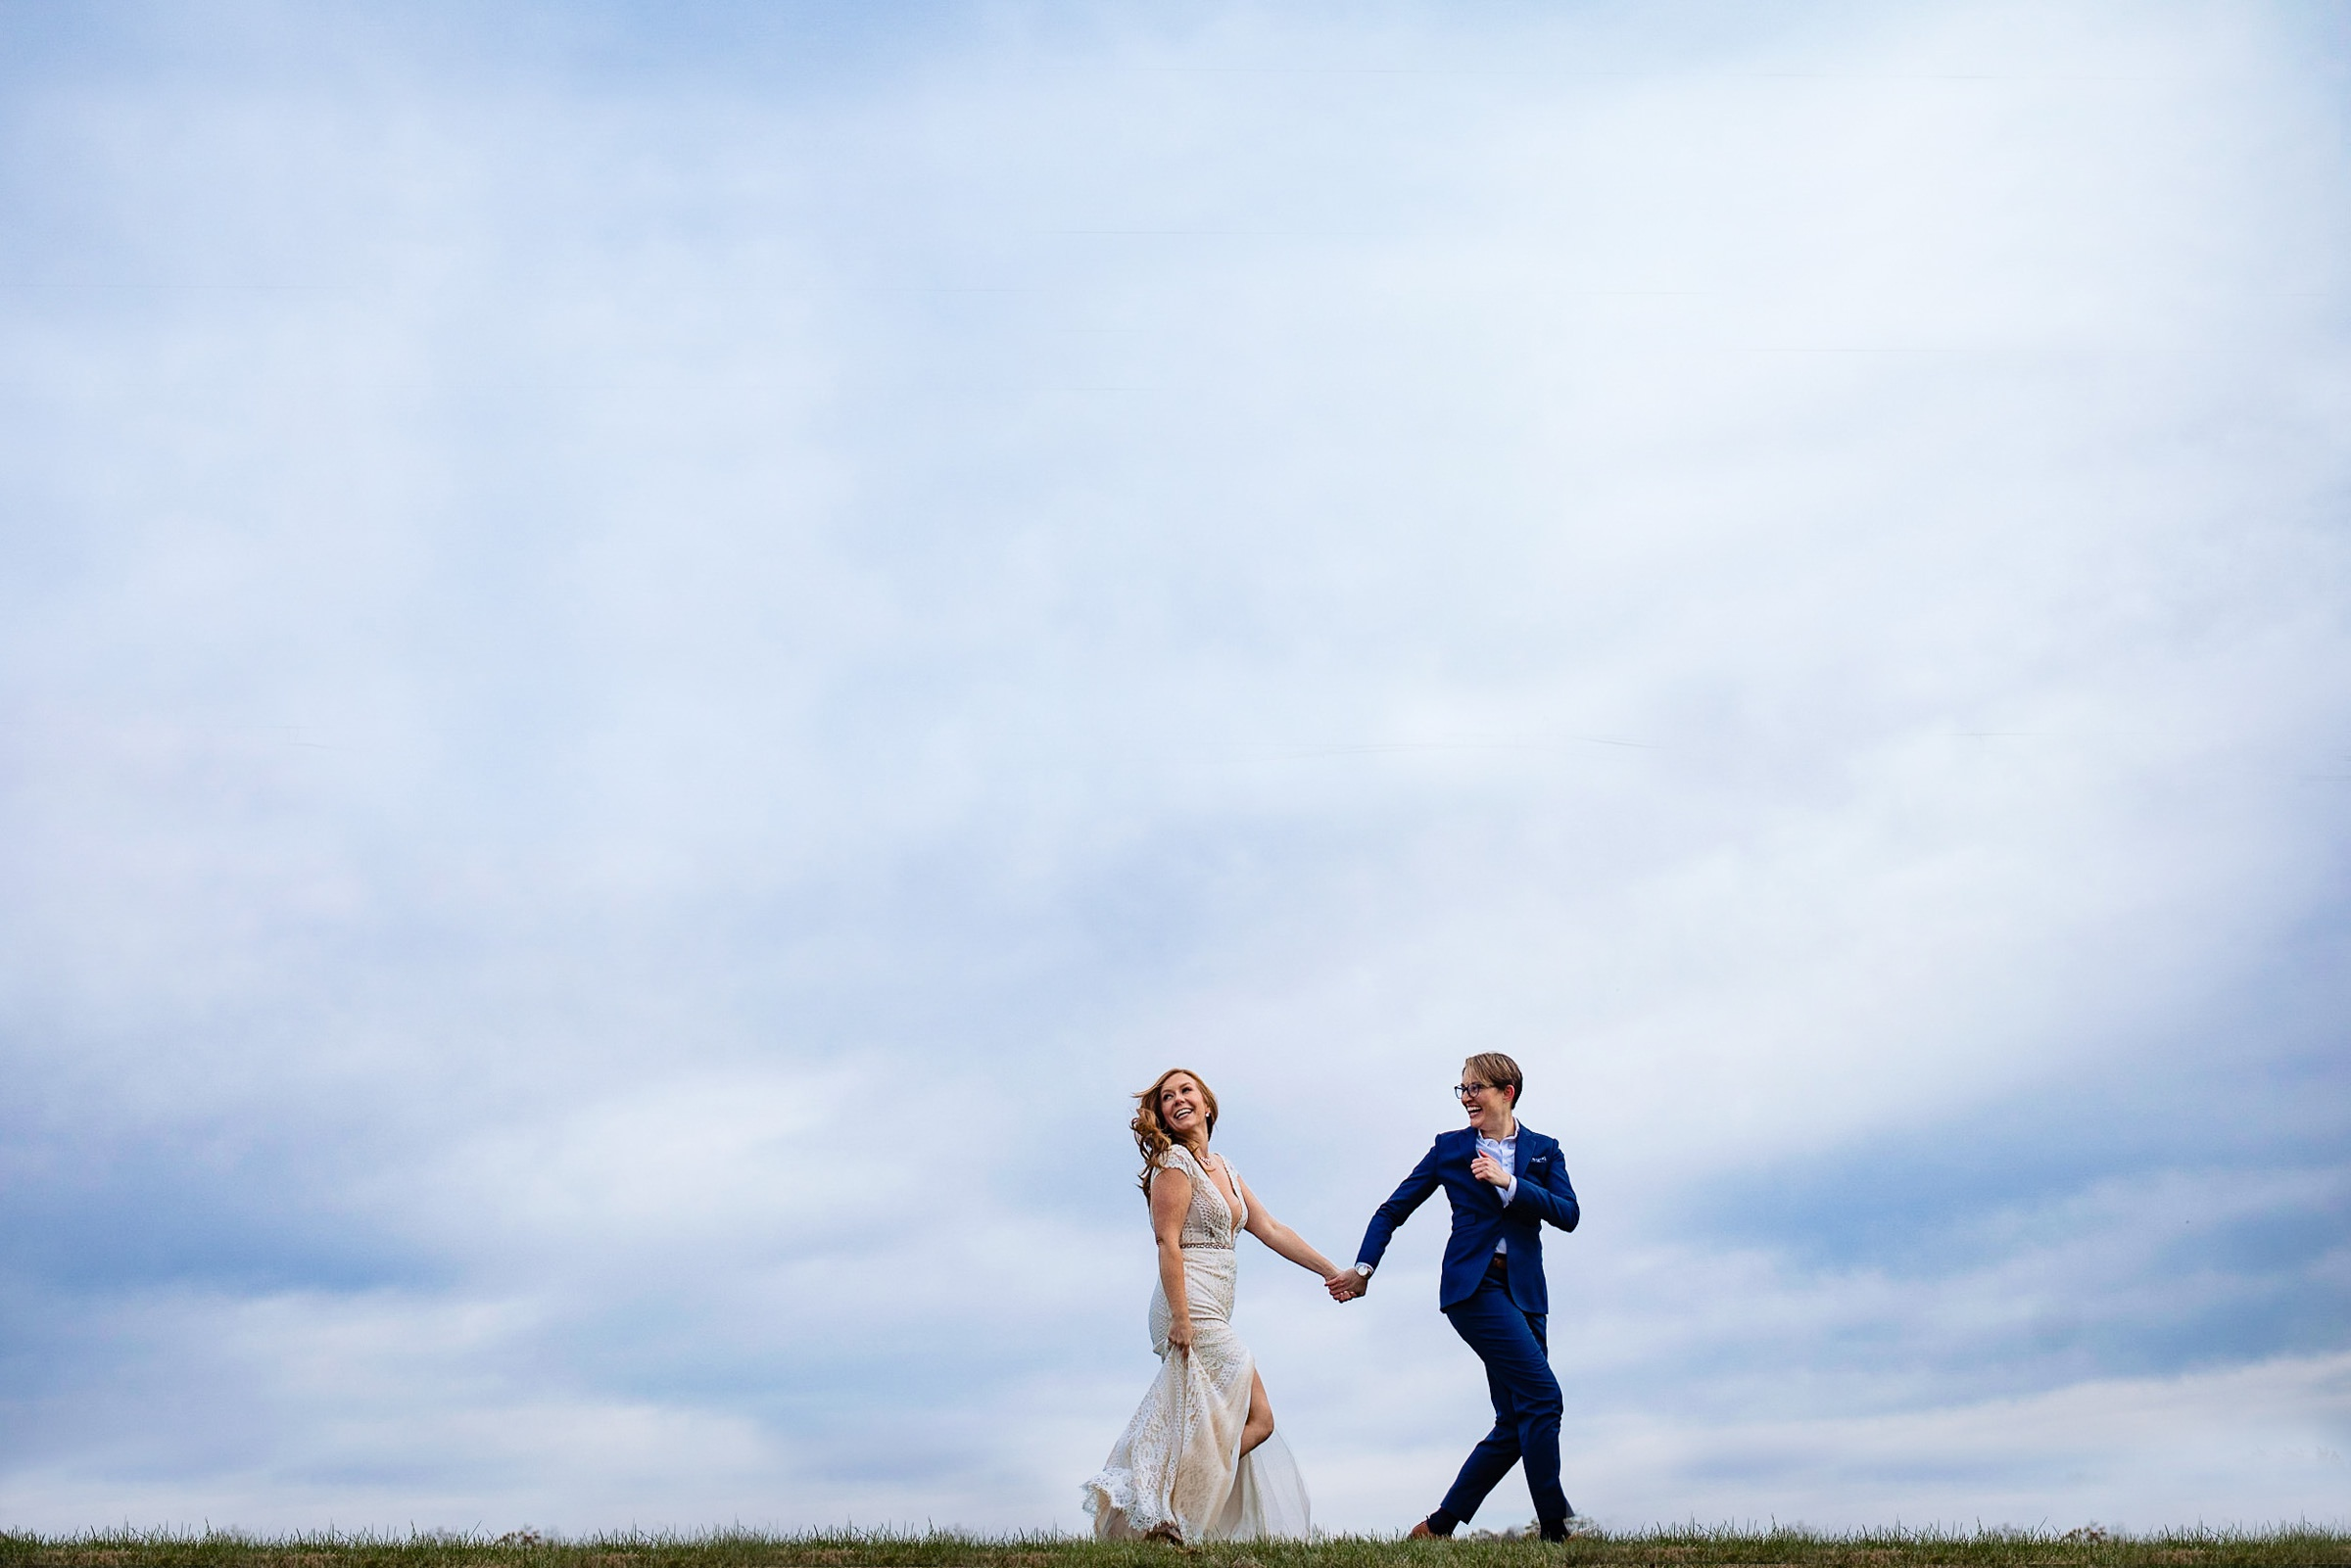 Brides against blue skies - photo by Photography by Brea